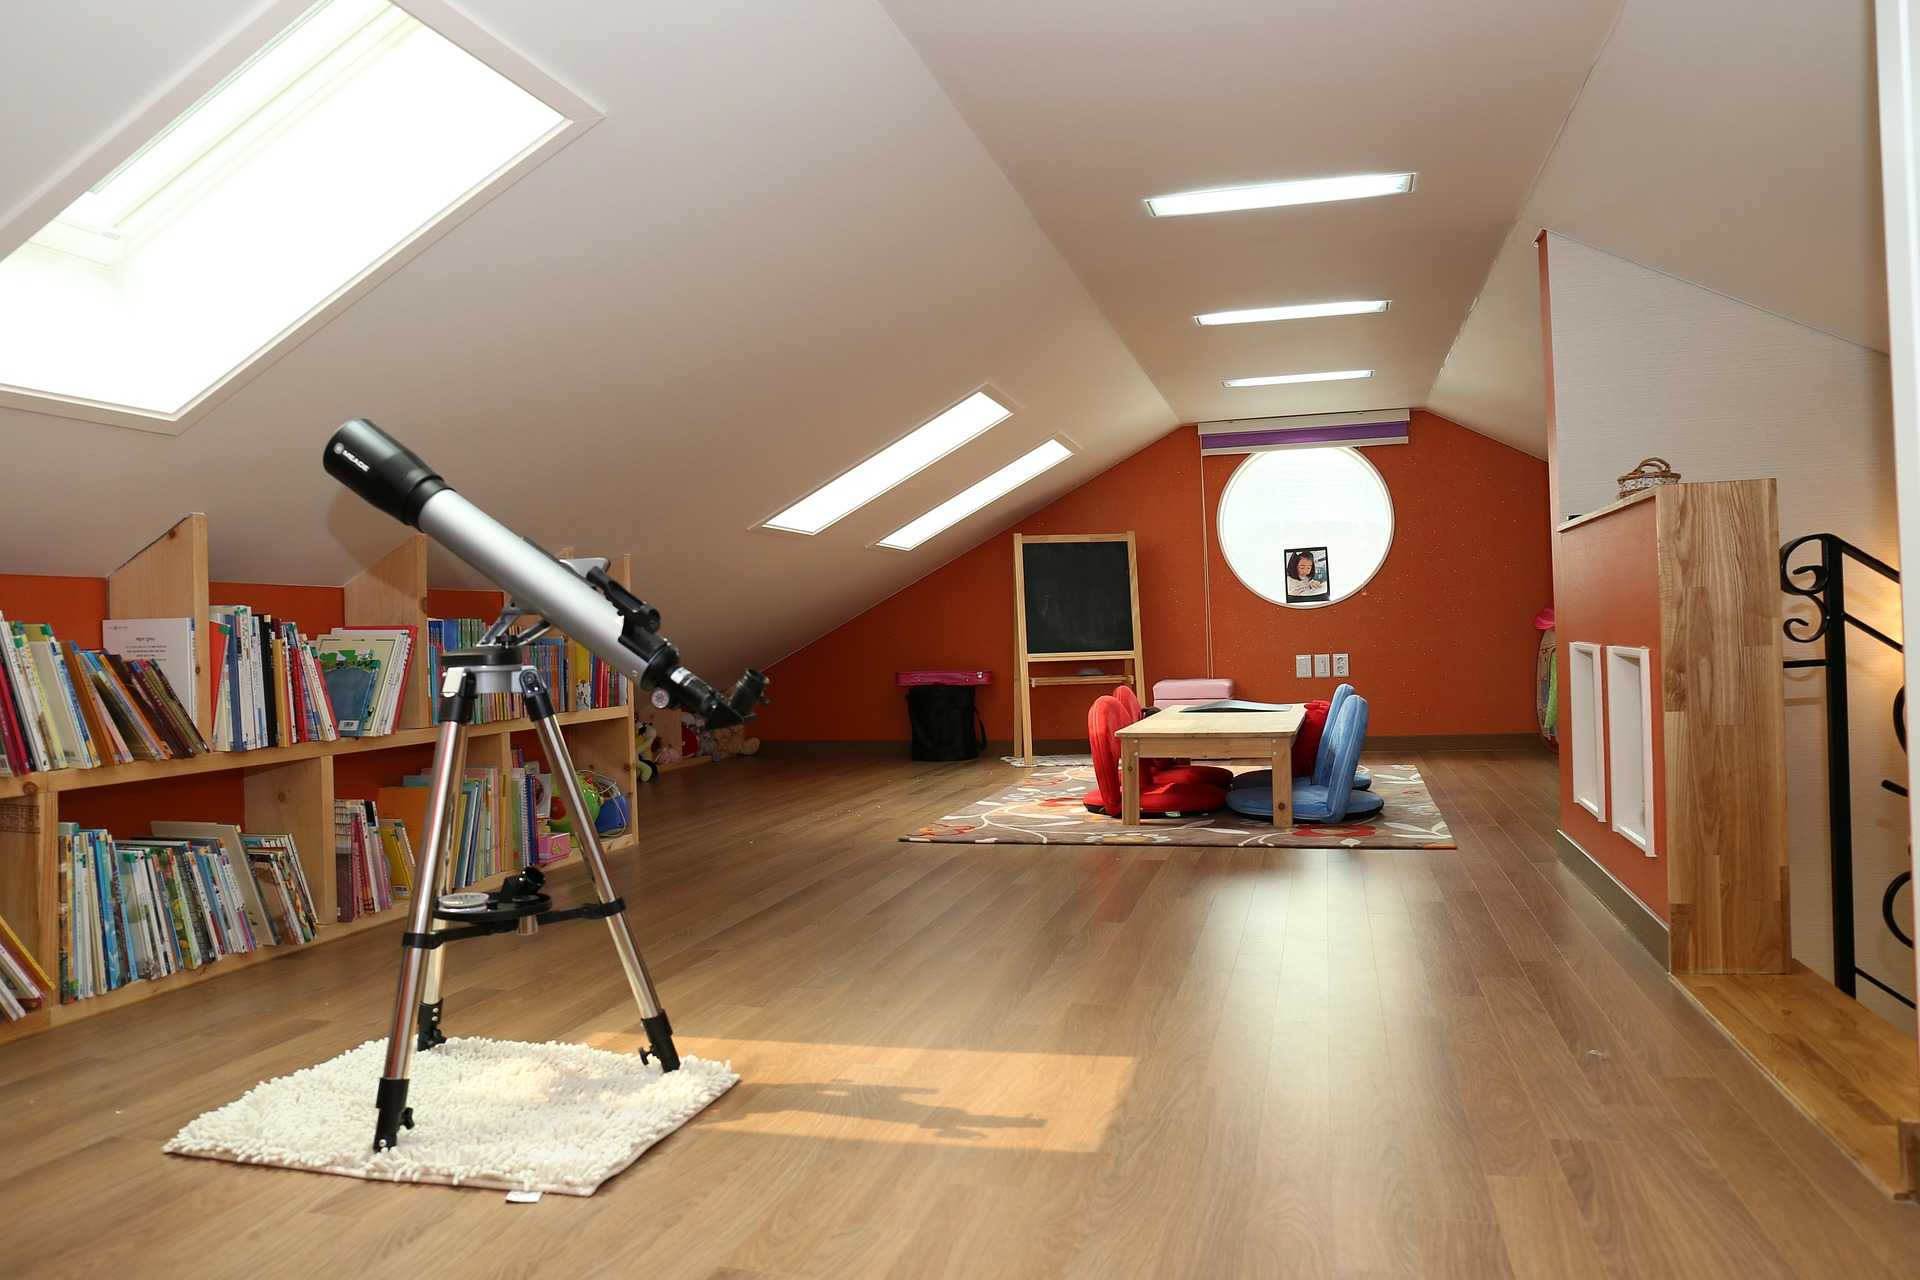 Extra Kamer Maken Op Zolder : Turning Your Attic into Bedrooms